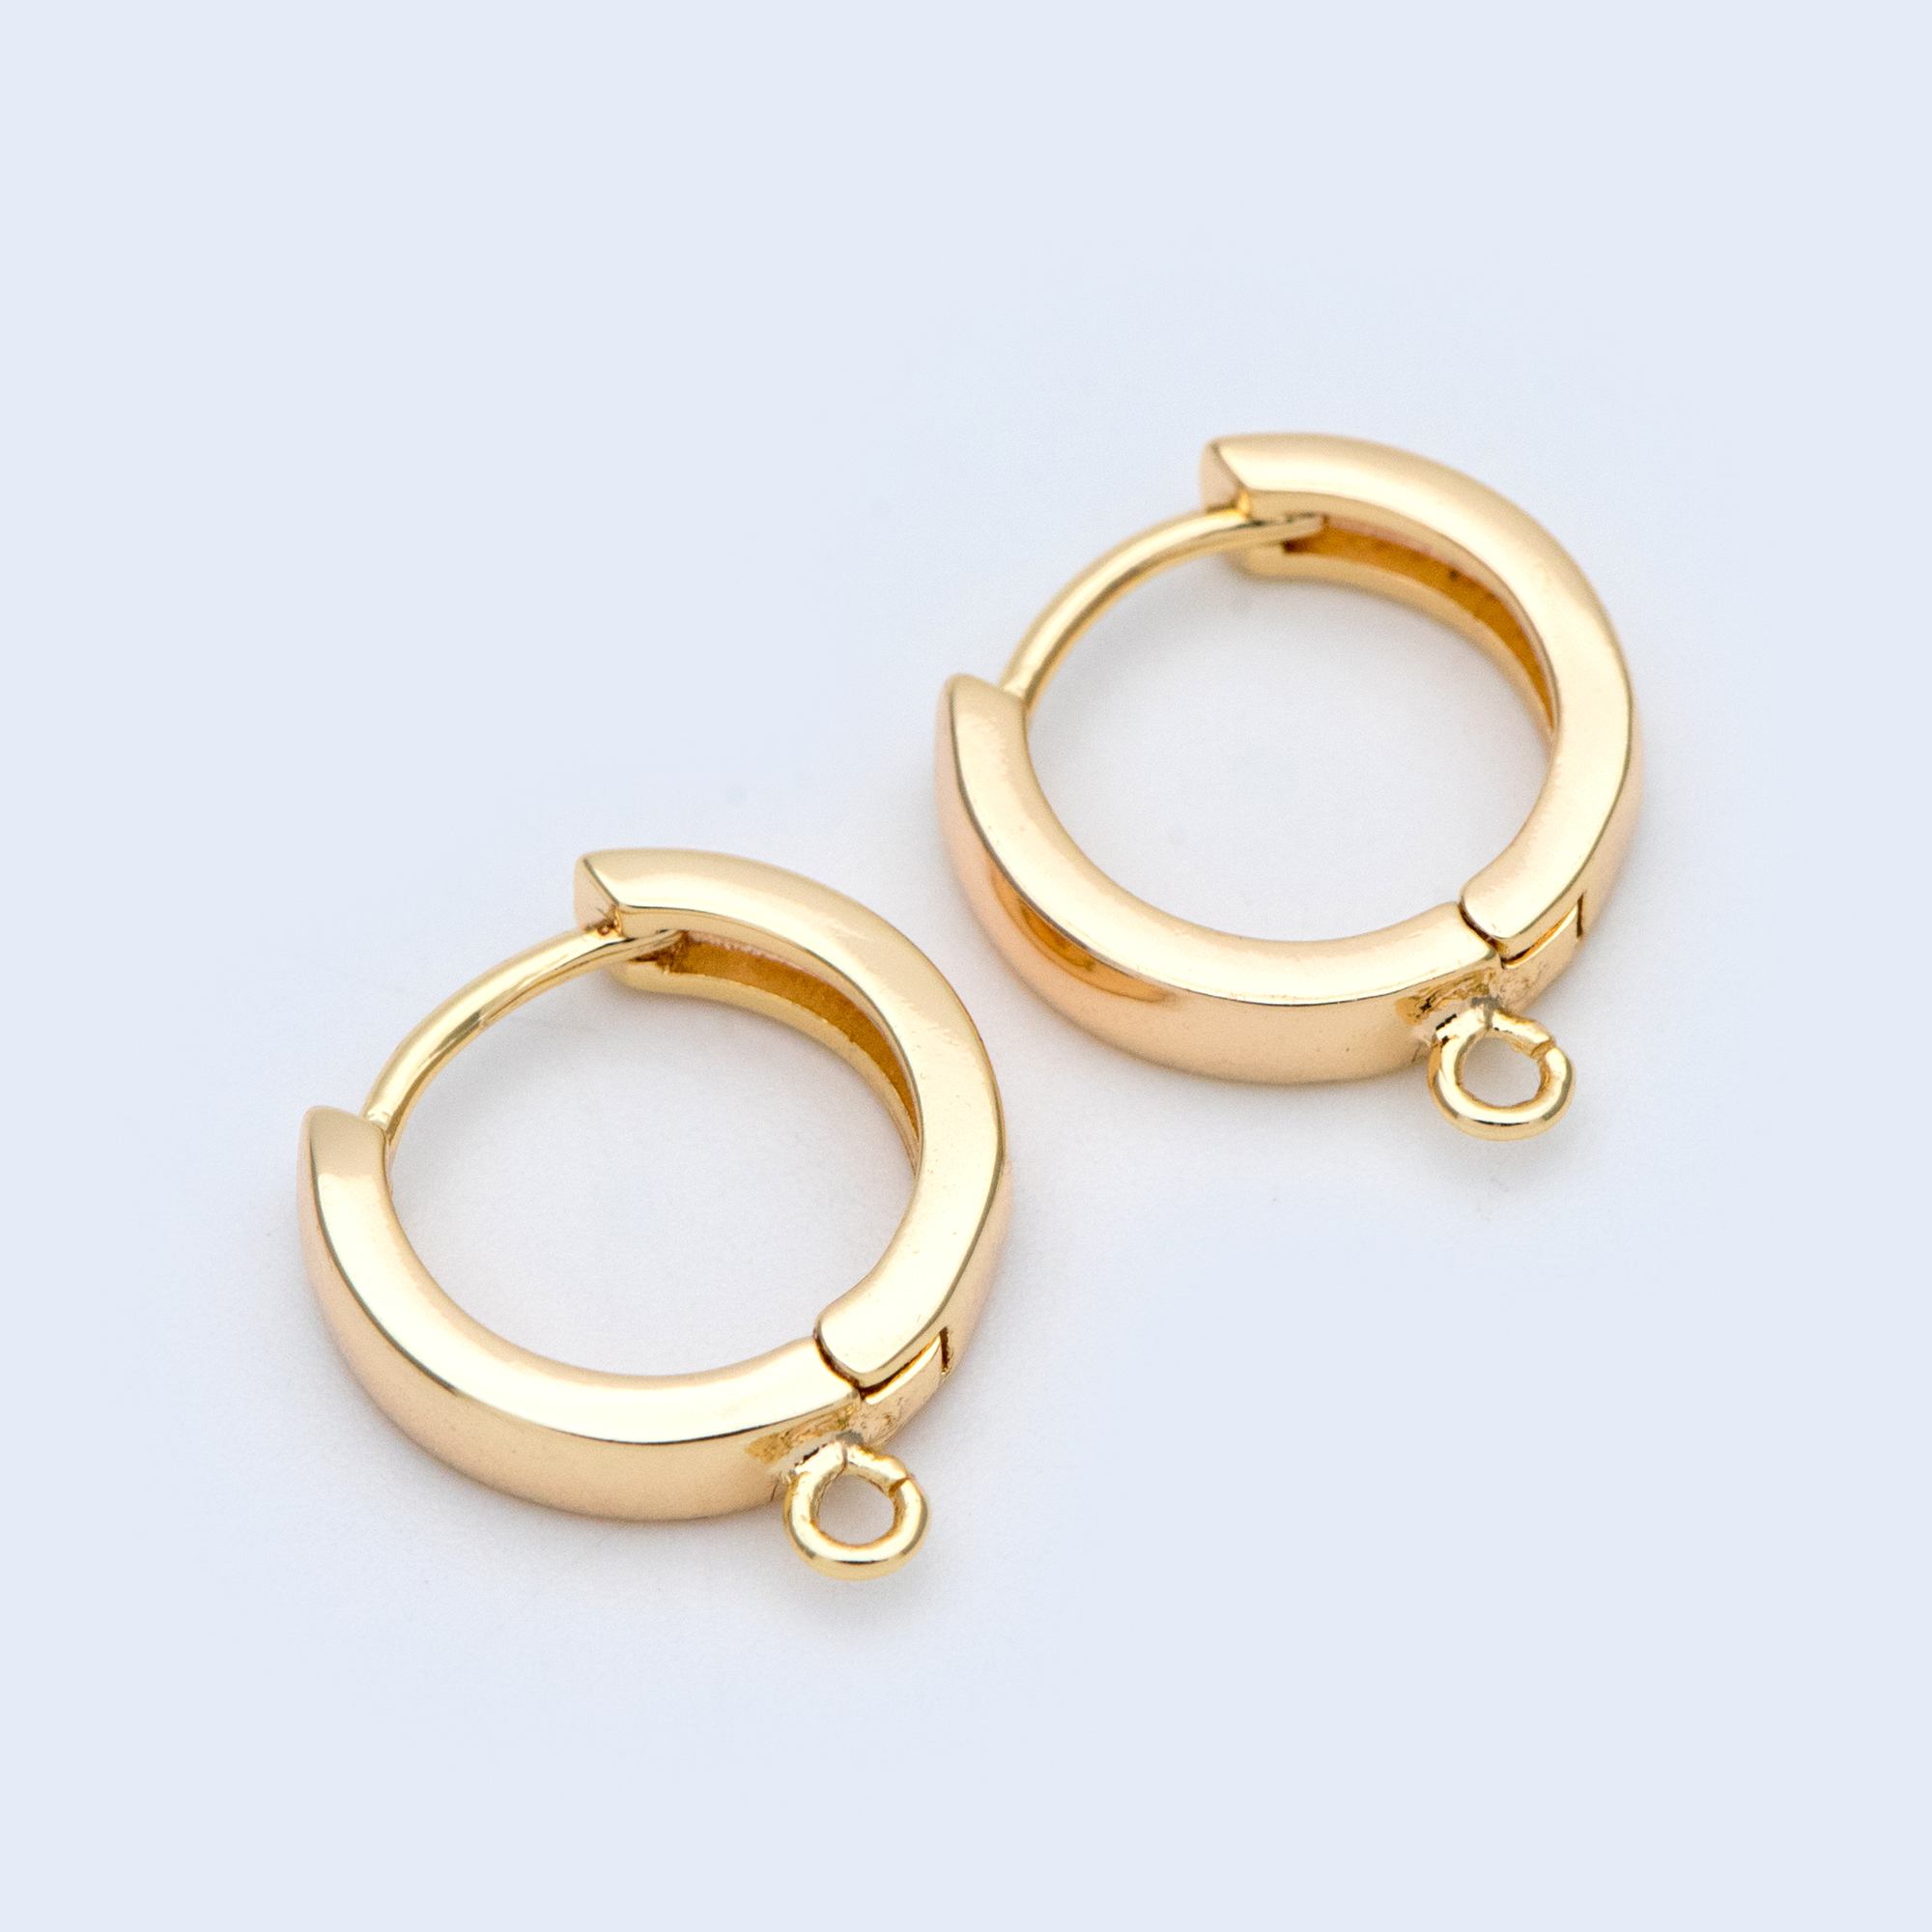 10pcs Round Leverback Earring Hooks 15x17mm, 18K Gold Plated Brass Earwire, Quality Earring Findings Wholesale (GB-989)